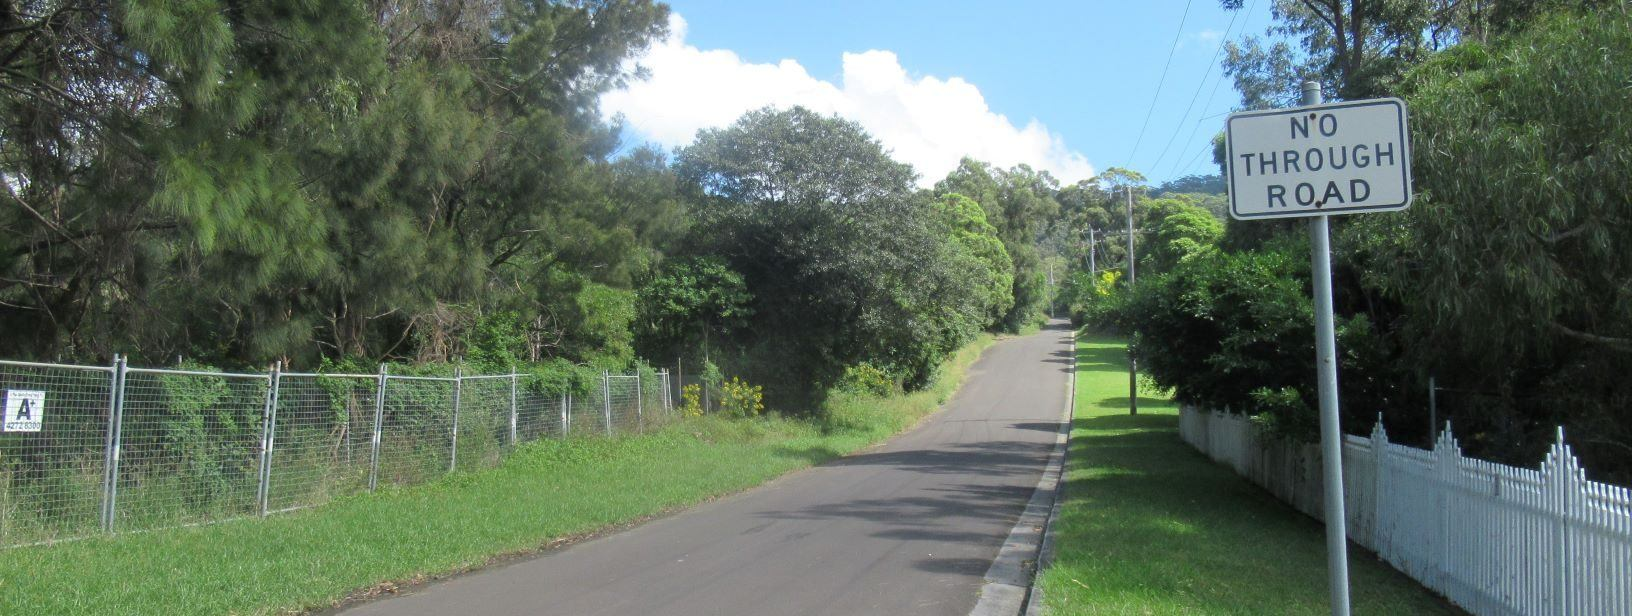 Our Earliest Northern Illawarra Gateway now a Road to Nowhere